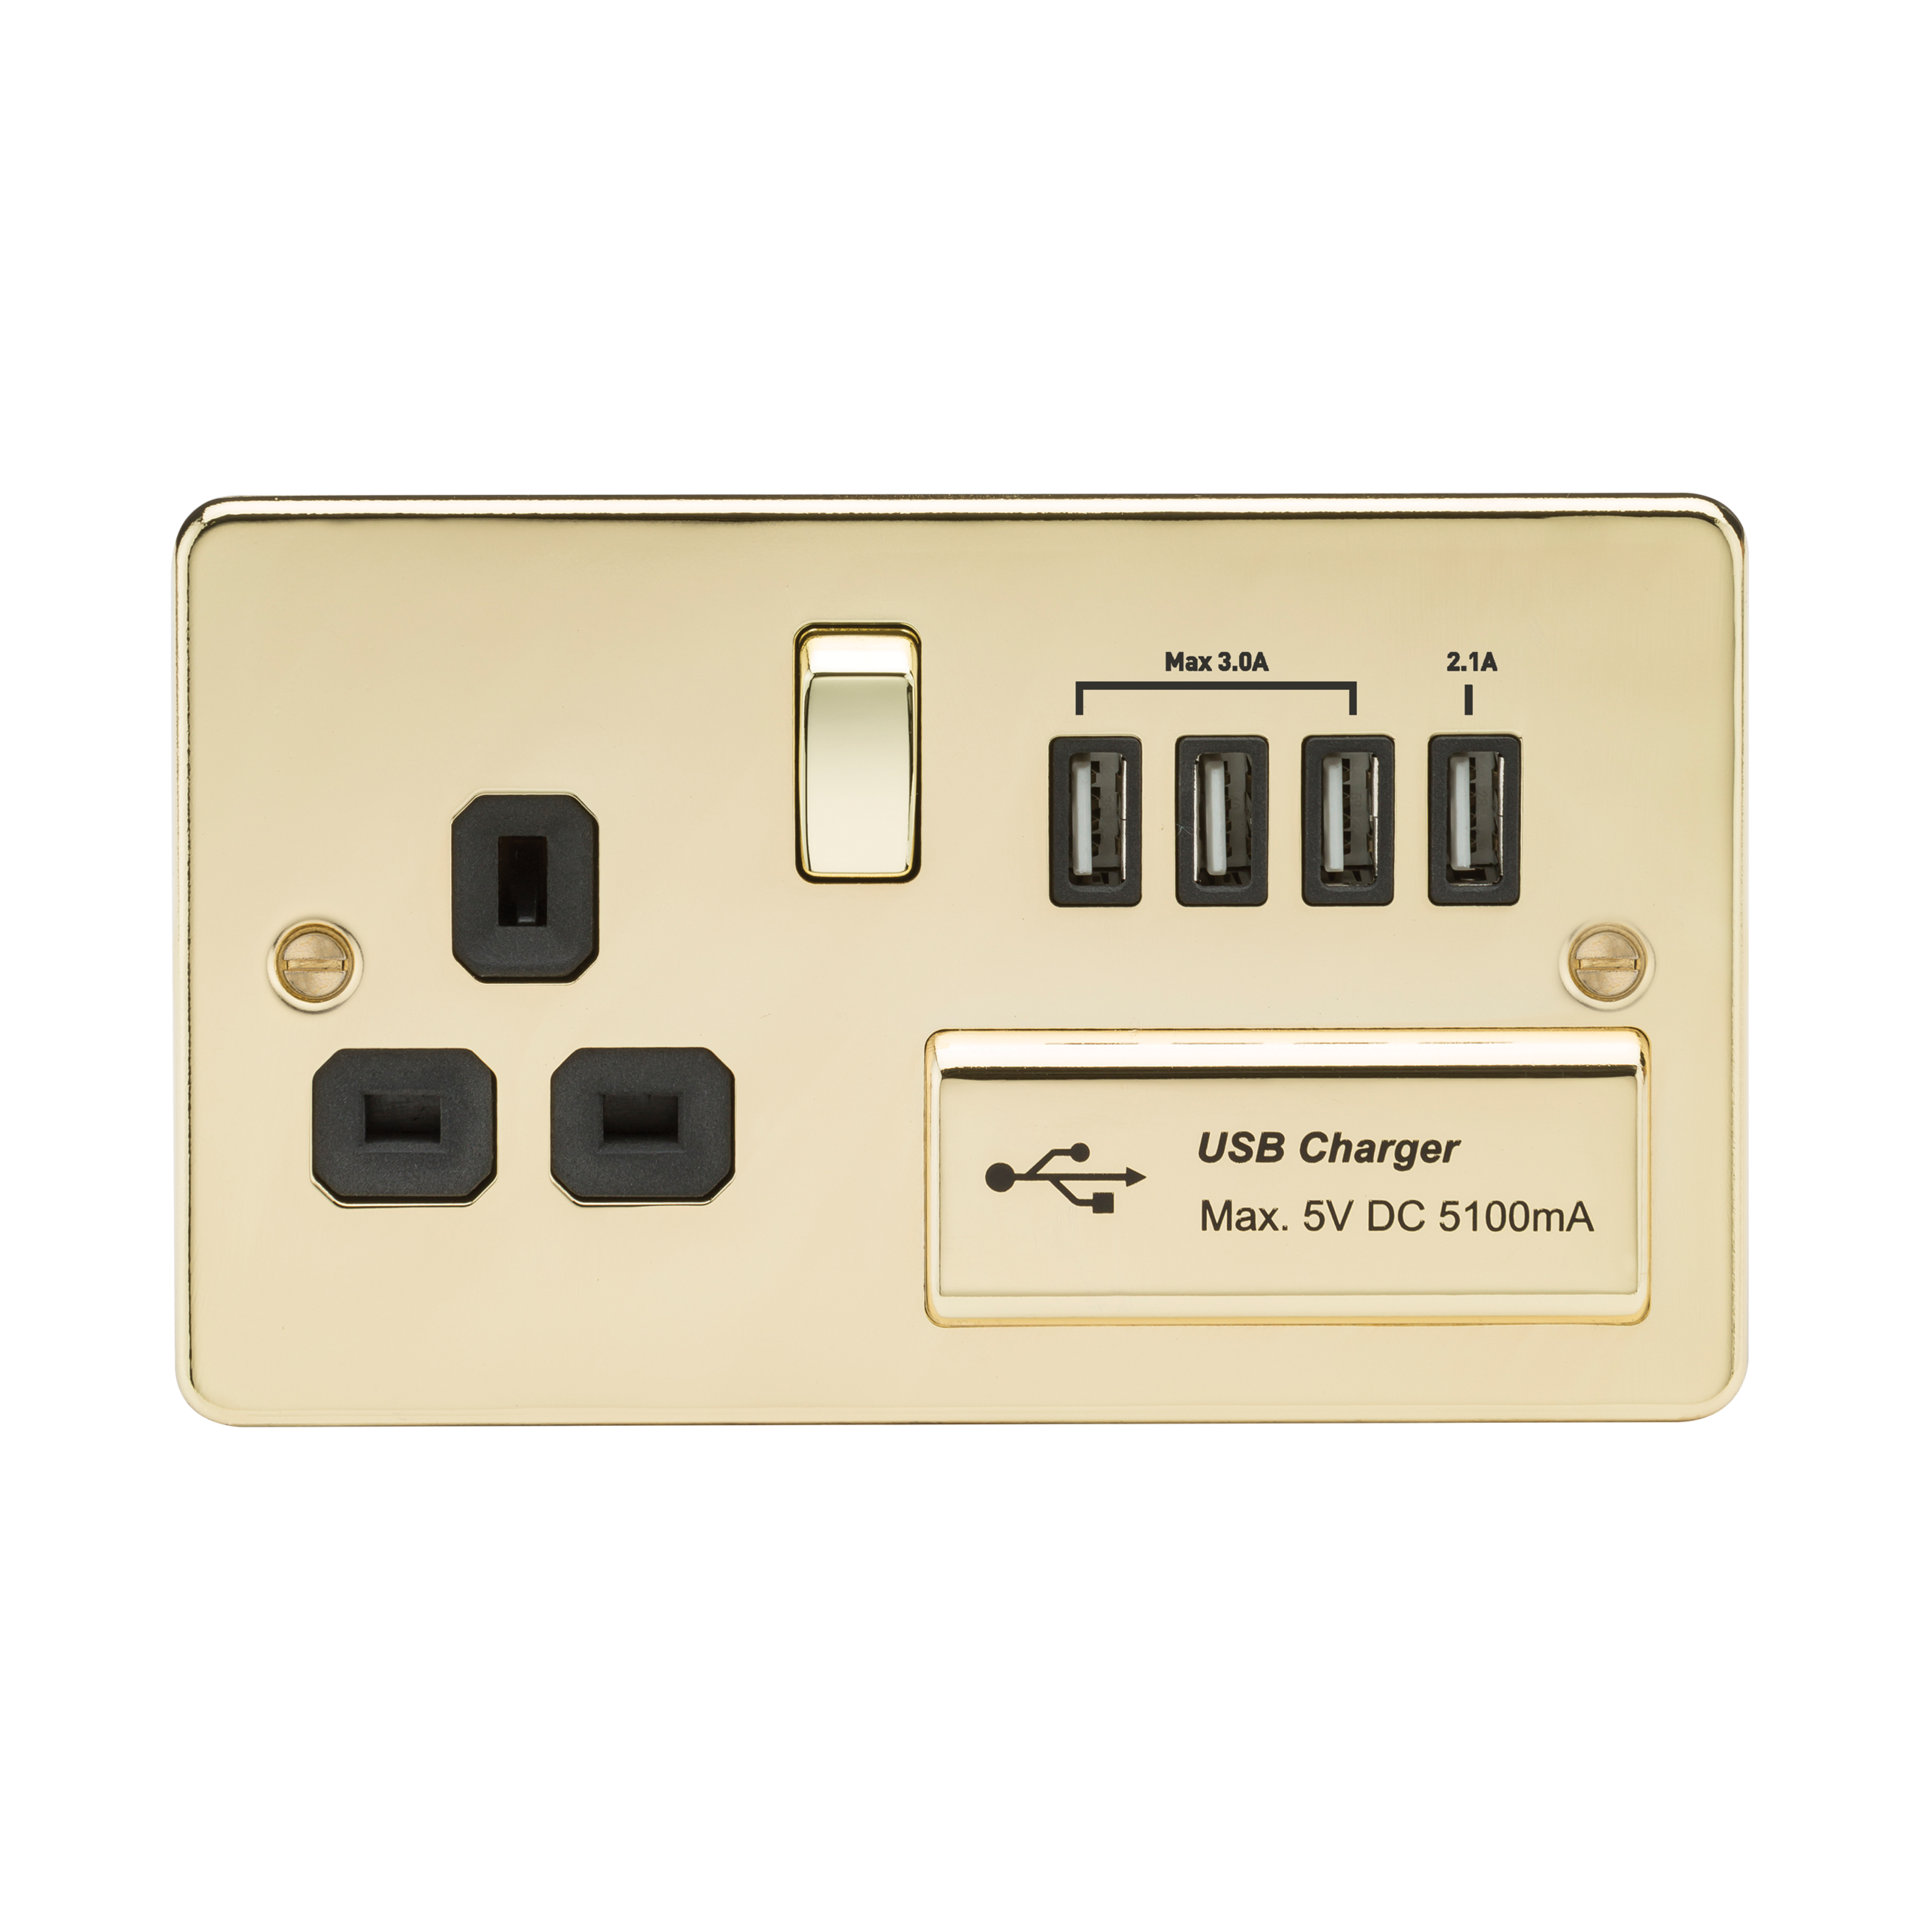 FLAT PLATE 1G 13A SWITCHED SOCKET WITH QUAD USB CHARGER 5V DC 5.1A - POLISHED BRASS W/BLACK INSERT